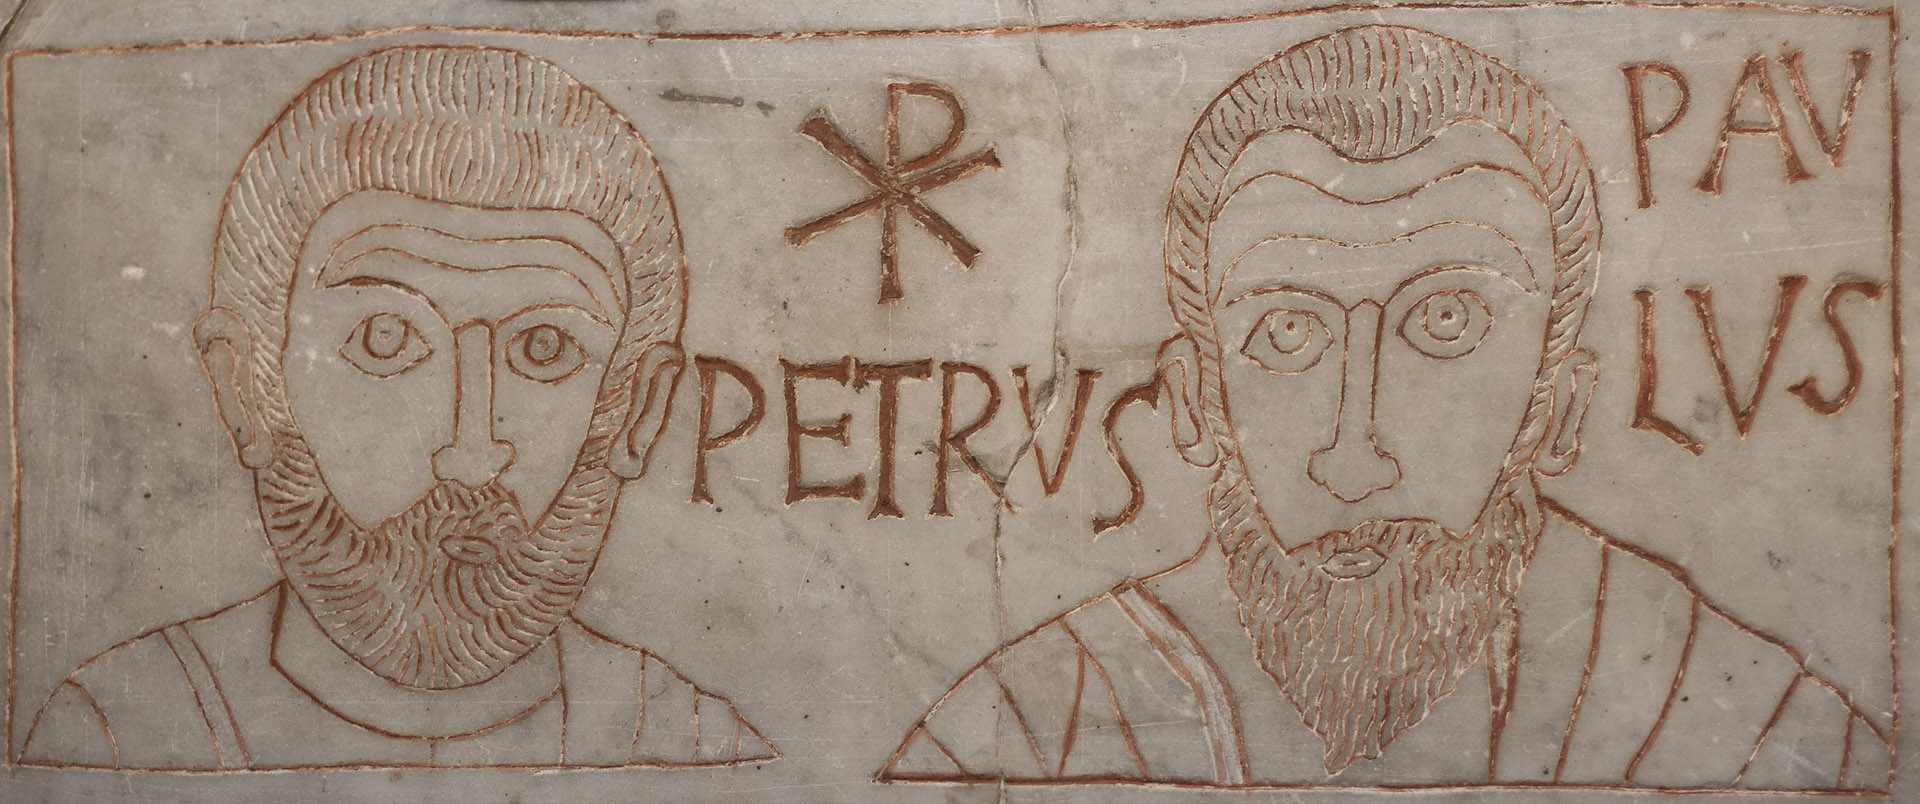 Slab used to close a child funerary niche (loculus) in a catacombs. Detail: Saint Apostles Peter and Paul. Marble. 4th cent. CE. Inv. No. 28596. Rome, Vatican Museums, Pio-Christian Museum